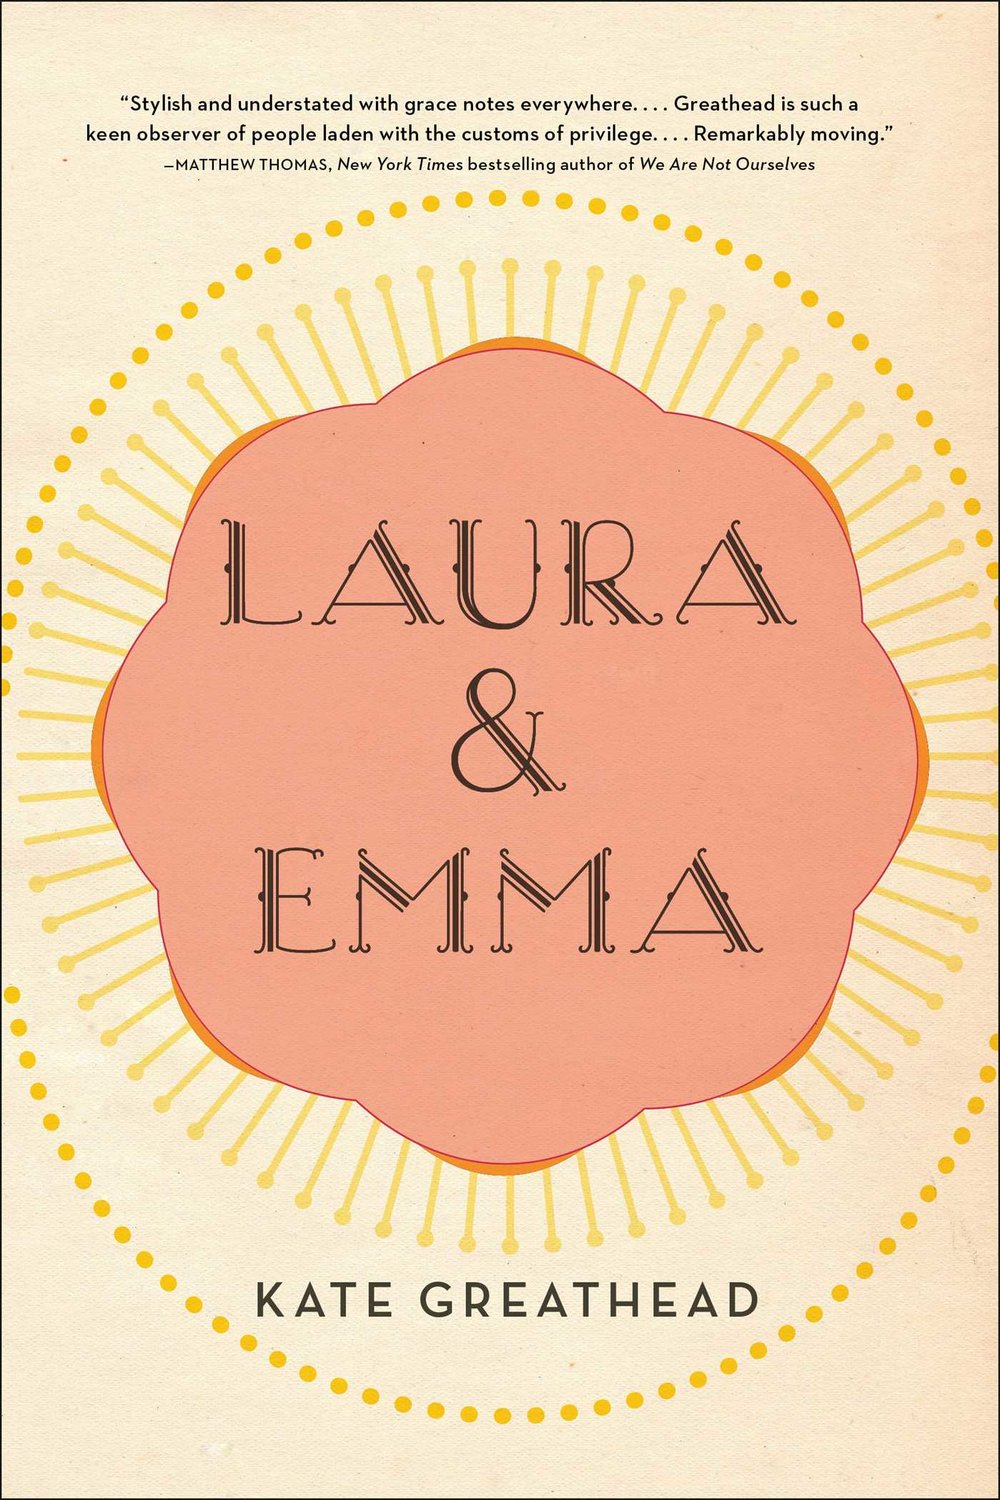 laura and emma by kate greathead.jpg